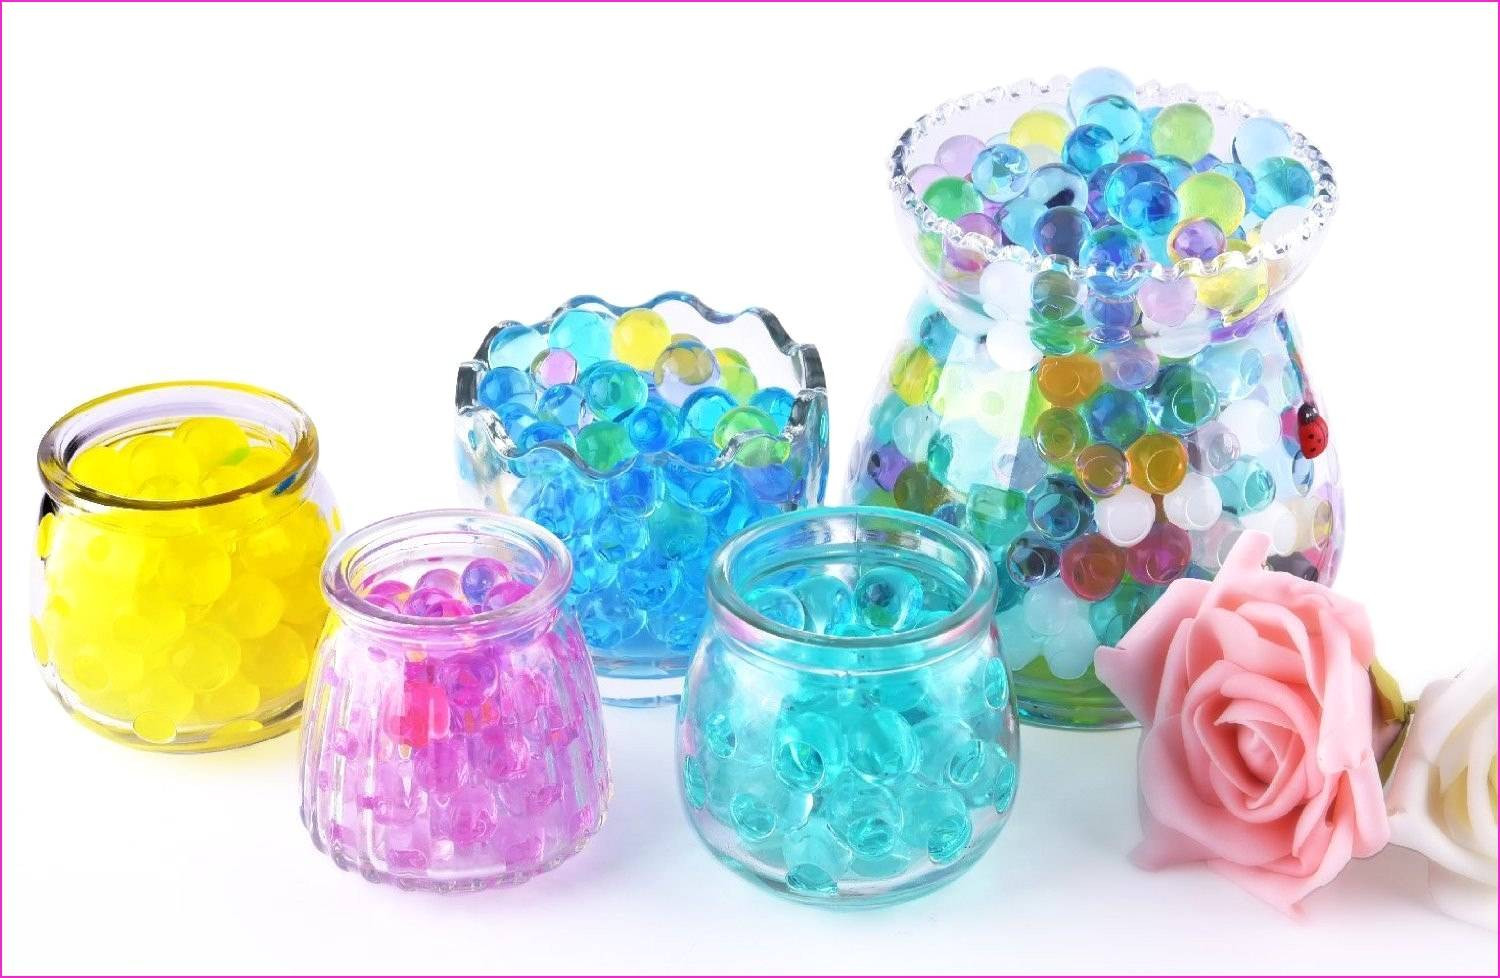 Water Beads for Vases Of Vase Centerpieces for Wedding New Wedding Stuff Unique Cvh Vases within Vase Centerpieces for Wedding New Wedding Stuff Unique Cvh Vases Vase Decoration with Beads This I